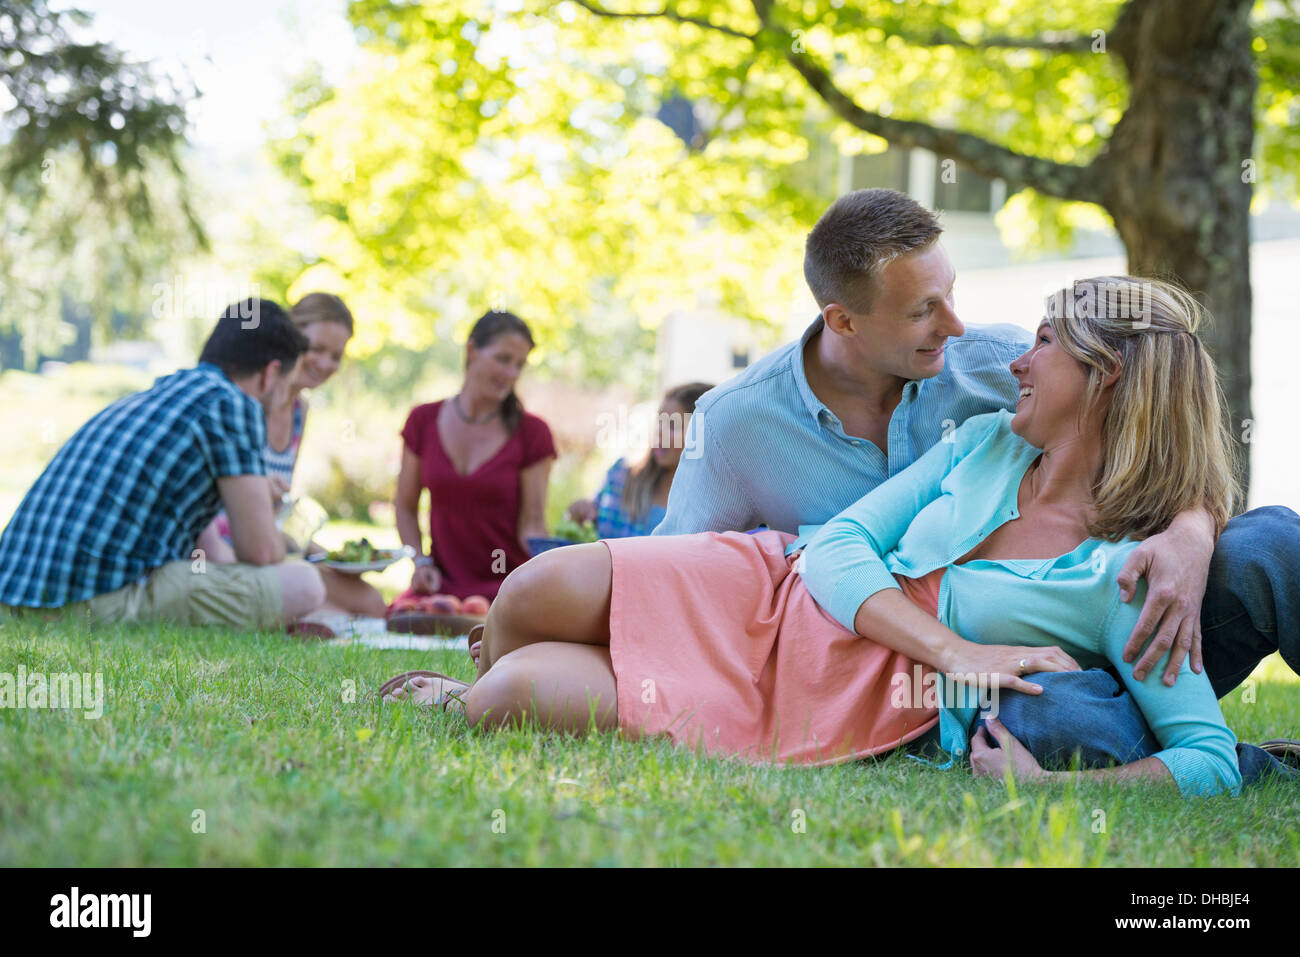 A group of adults and children sitting on the grass under the shade of a tree. A family party. - Stock Image